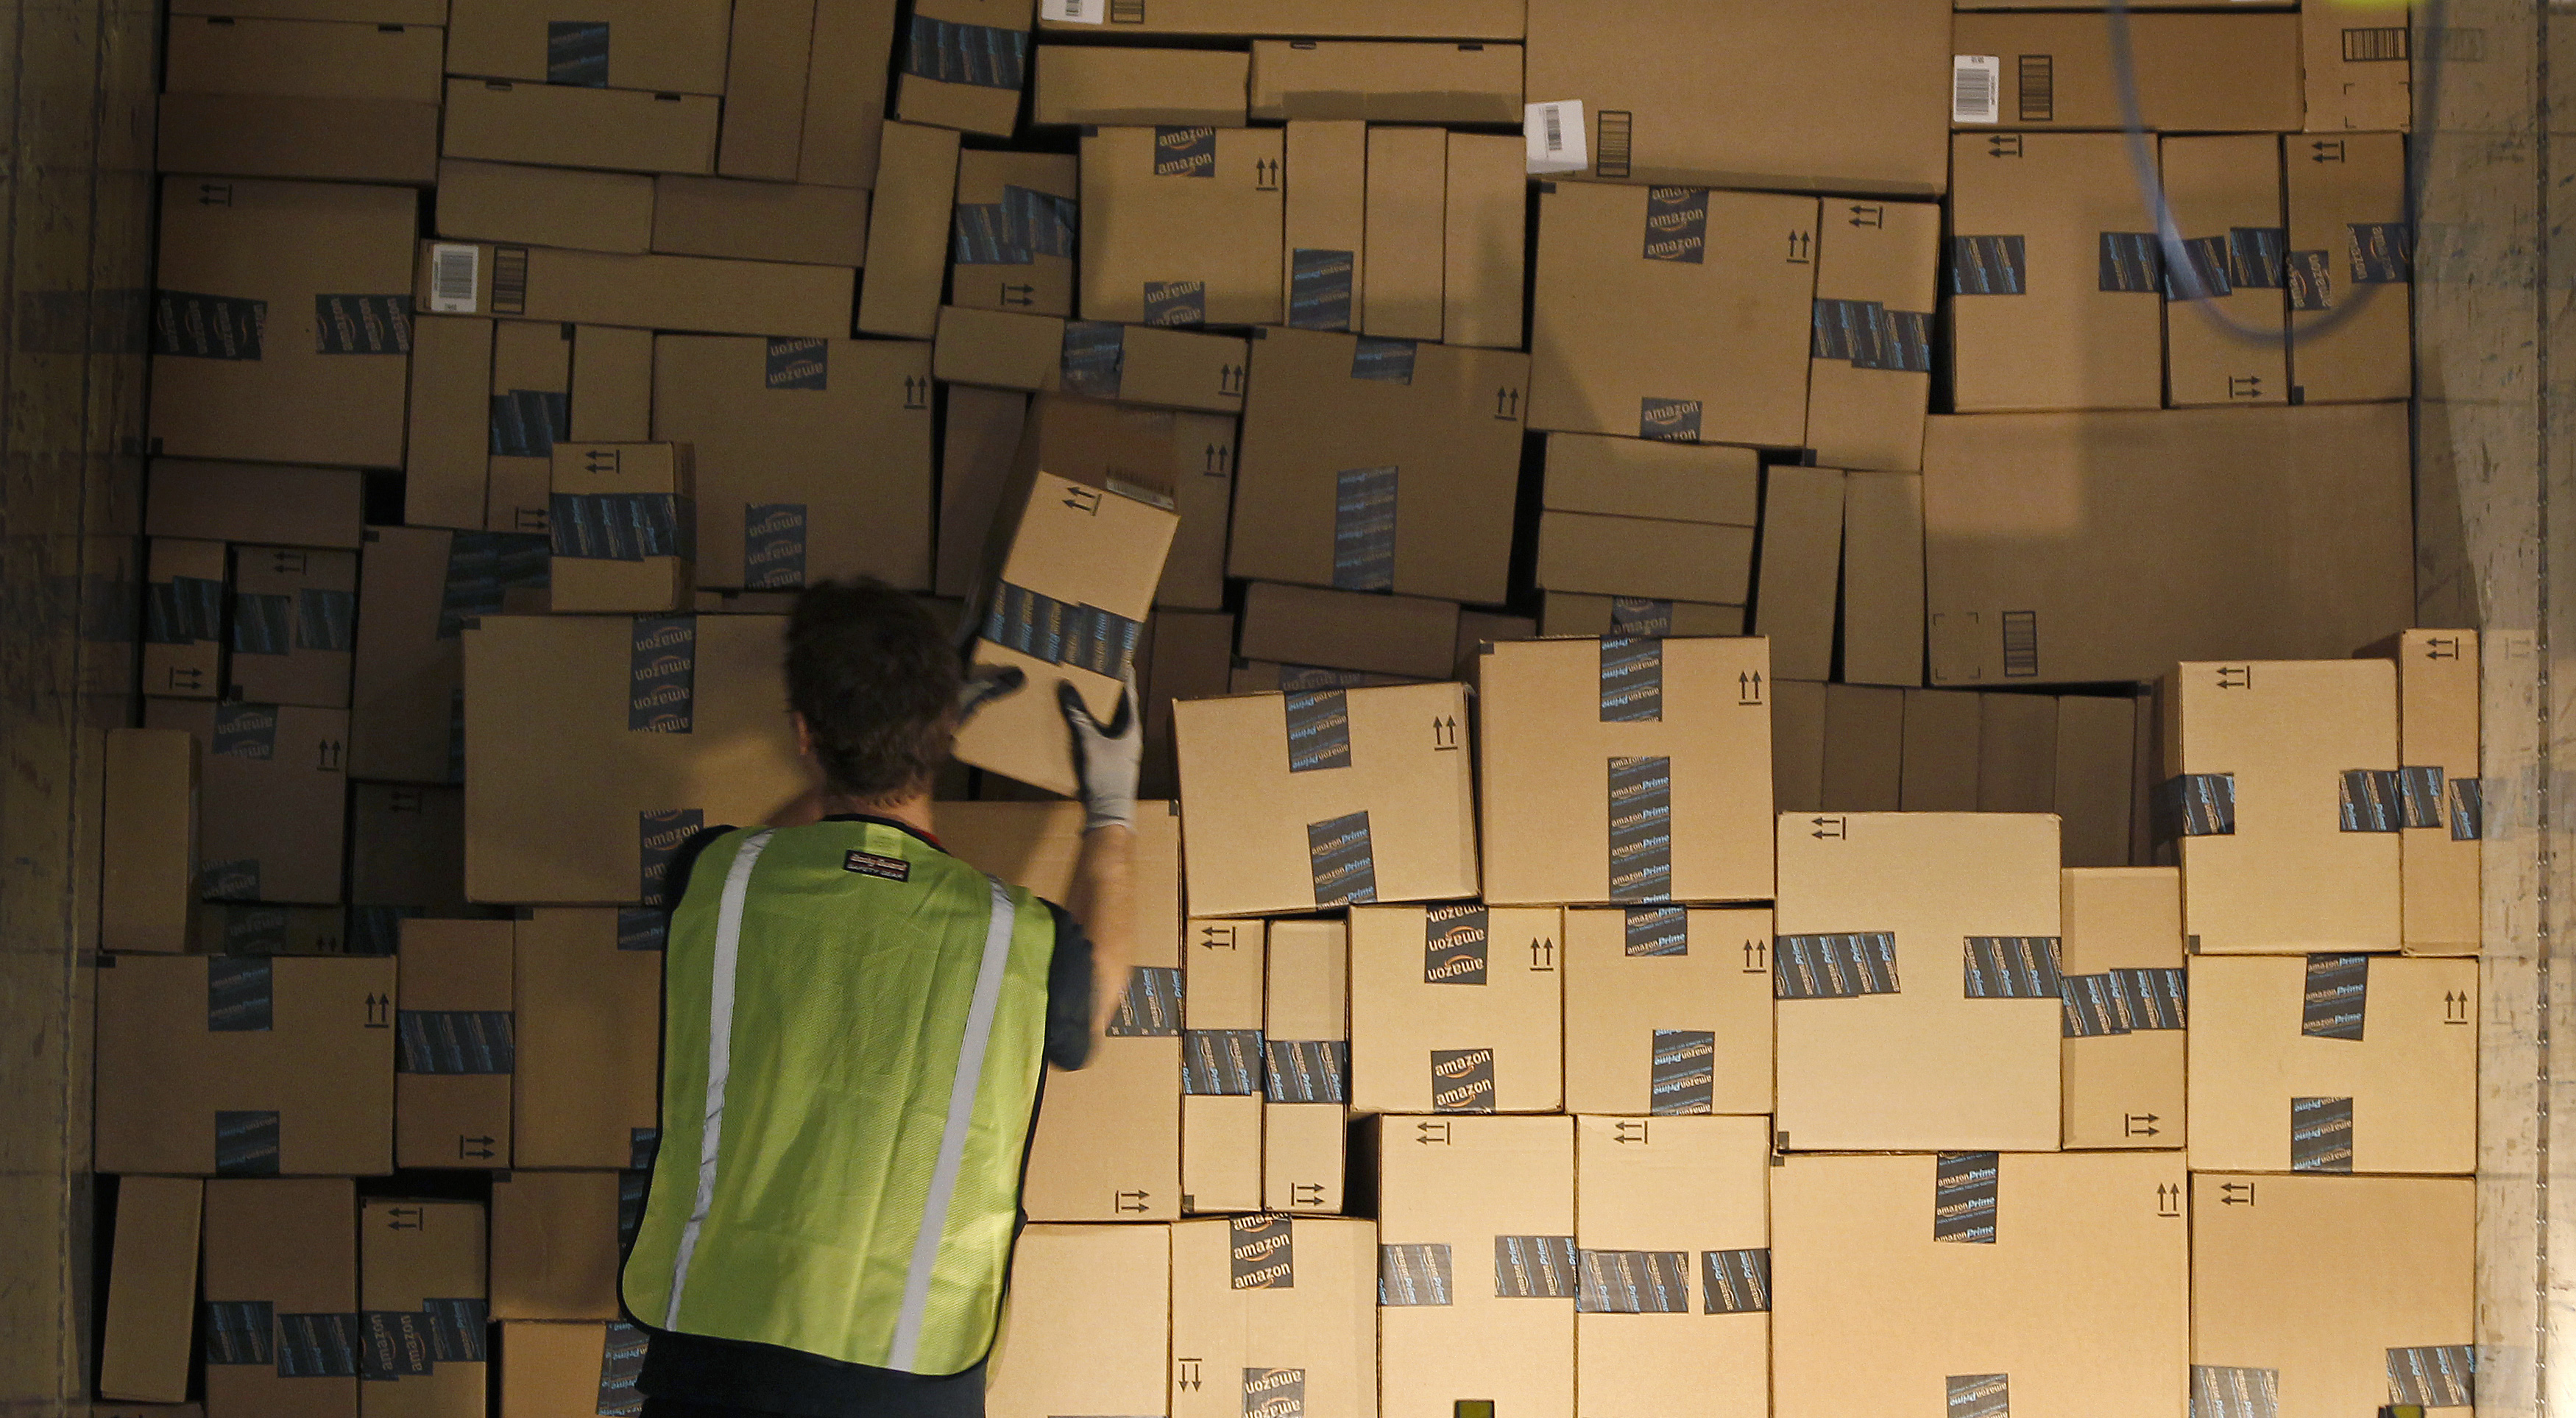 A worker stacks a shipping trailer with boxed items for delivery at Amazon's distribution center in Phoenix, Arizona November 22, 2013. The web-based retailer is preparing for Cyber Monday, traditionally the busiest day of the year for online purchases, which falls on December 2 in 2013.